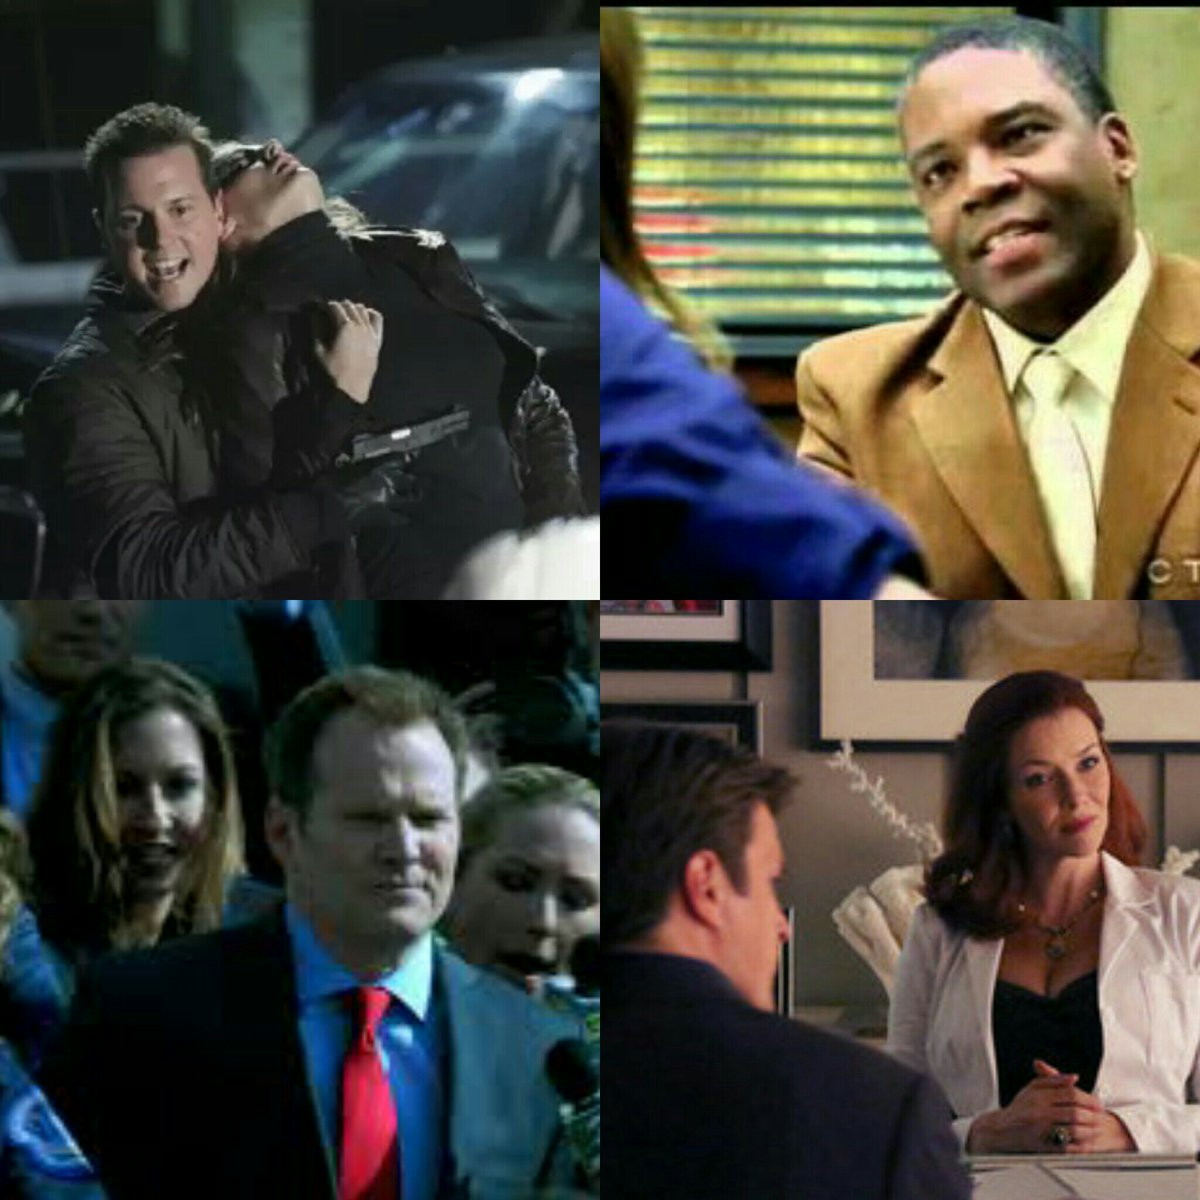 Thank you to my favorite #Castle villains for the fun and fear @Wersching @TheJackColeman @MikeGeneMose https://t.co/xSYoCnJ2yG